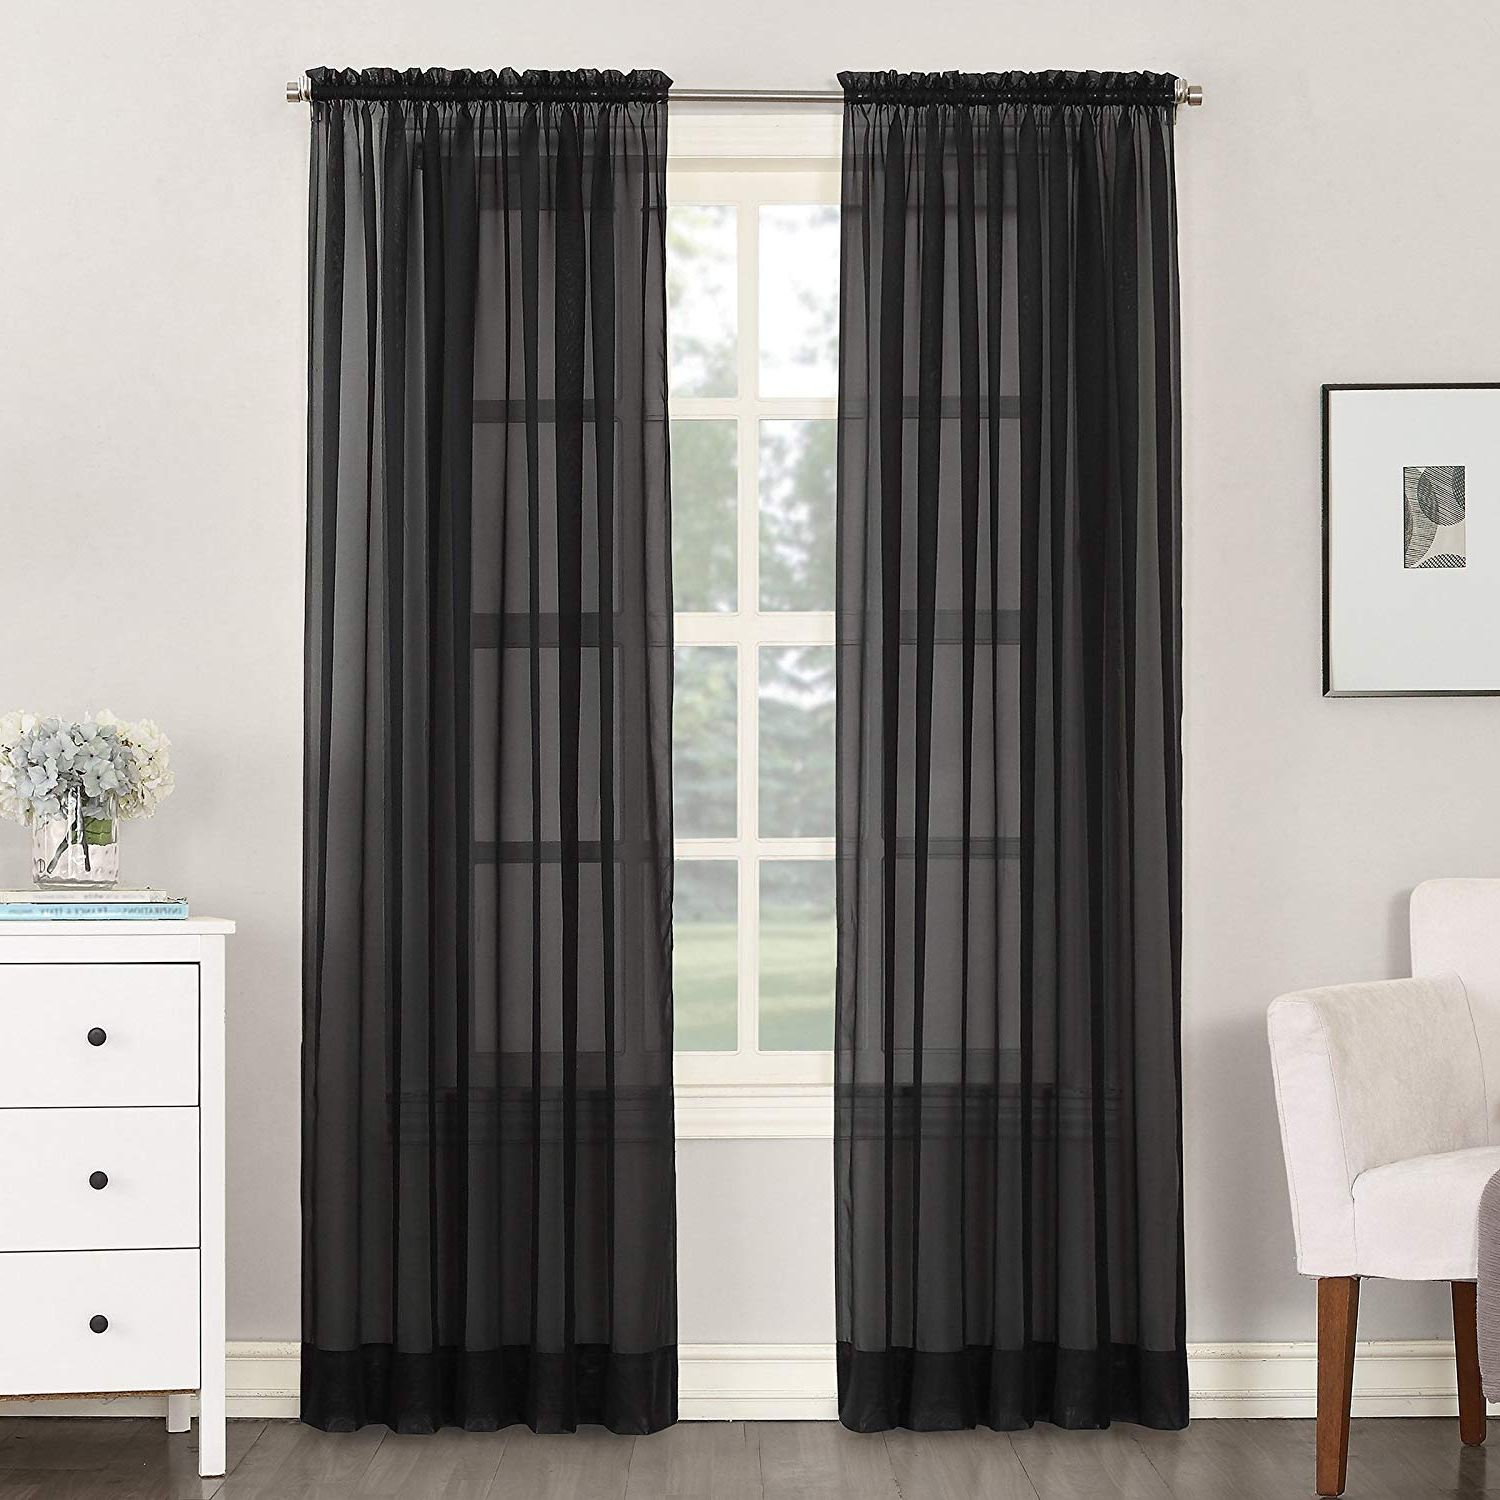 """Rod Pocket Curtain Panels Intended For Fashionable No. 918 Emily Sheer Voile Rod Pocket Curtain Panel, 59"""" X 95"""", Black (Gallery 3 of 20)"""